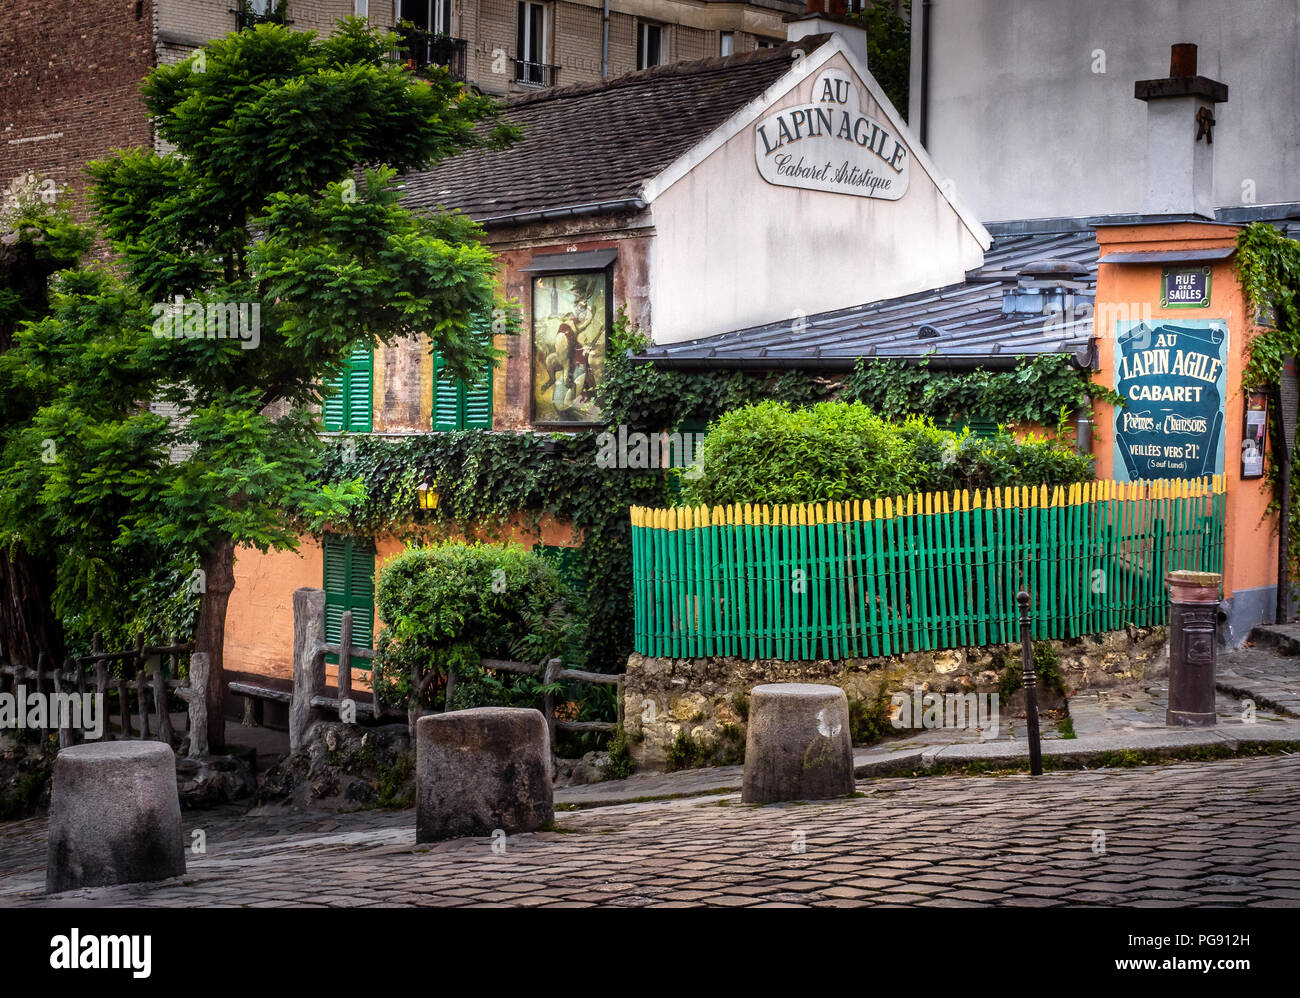 Lapin Agile is an old and  famous Montmartre cabaret bar in 18th arrondissement of Paris, France. - Stock Image